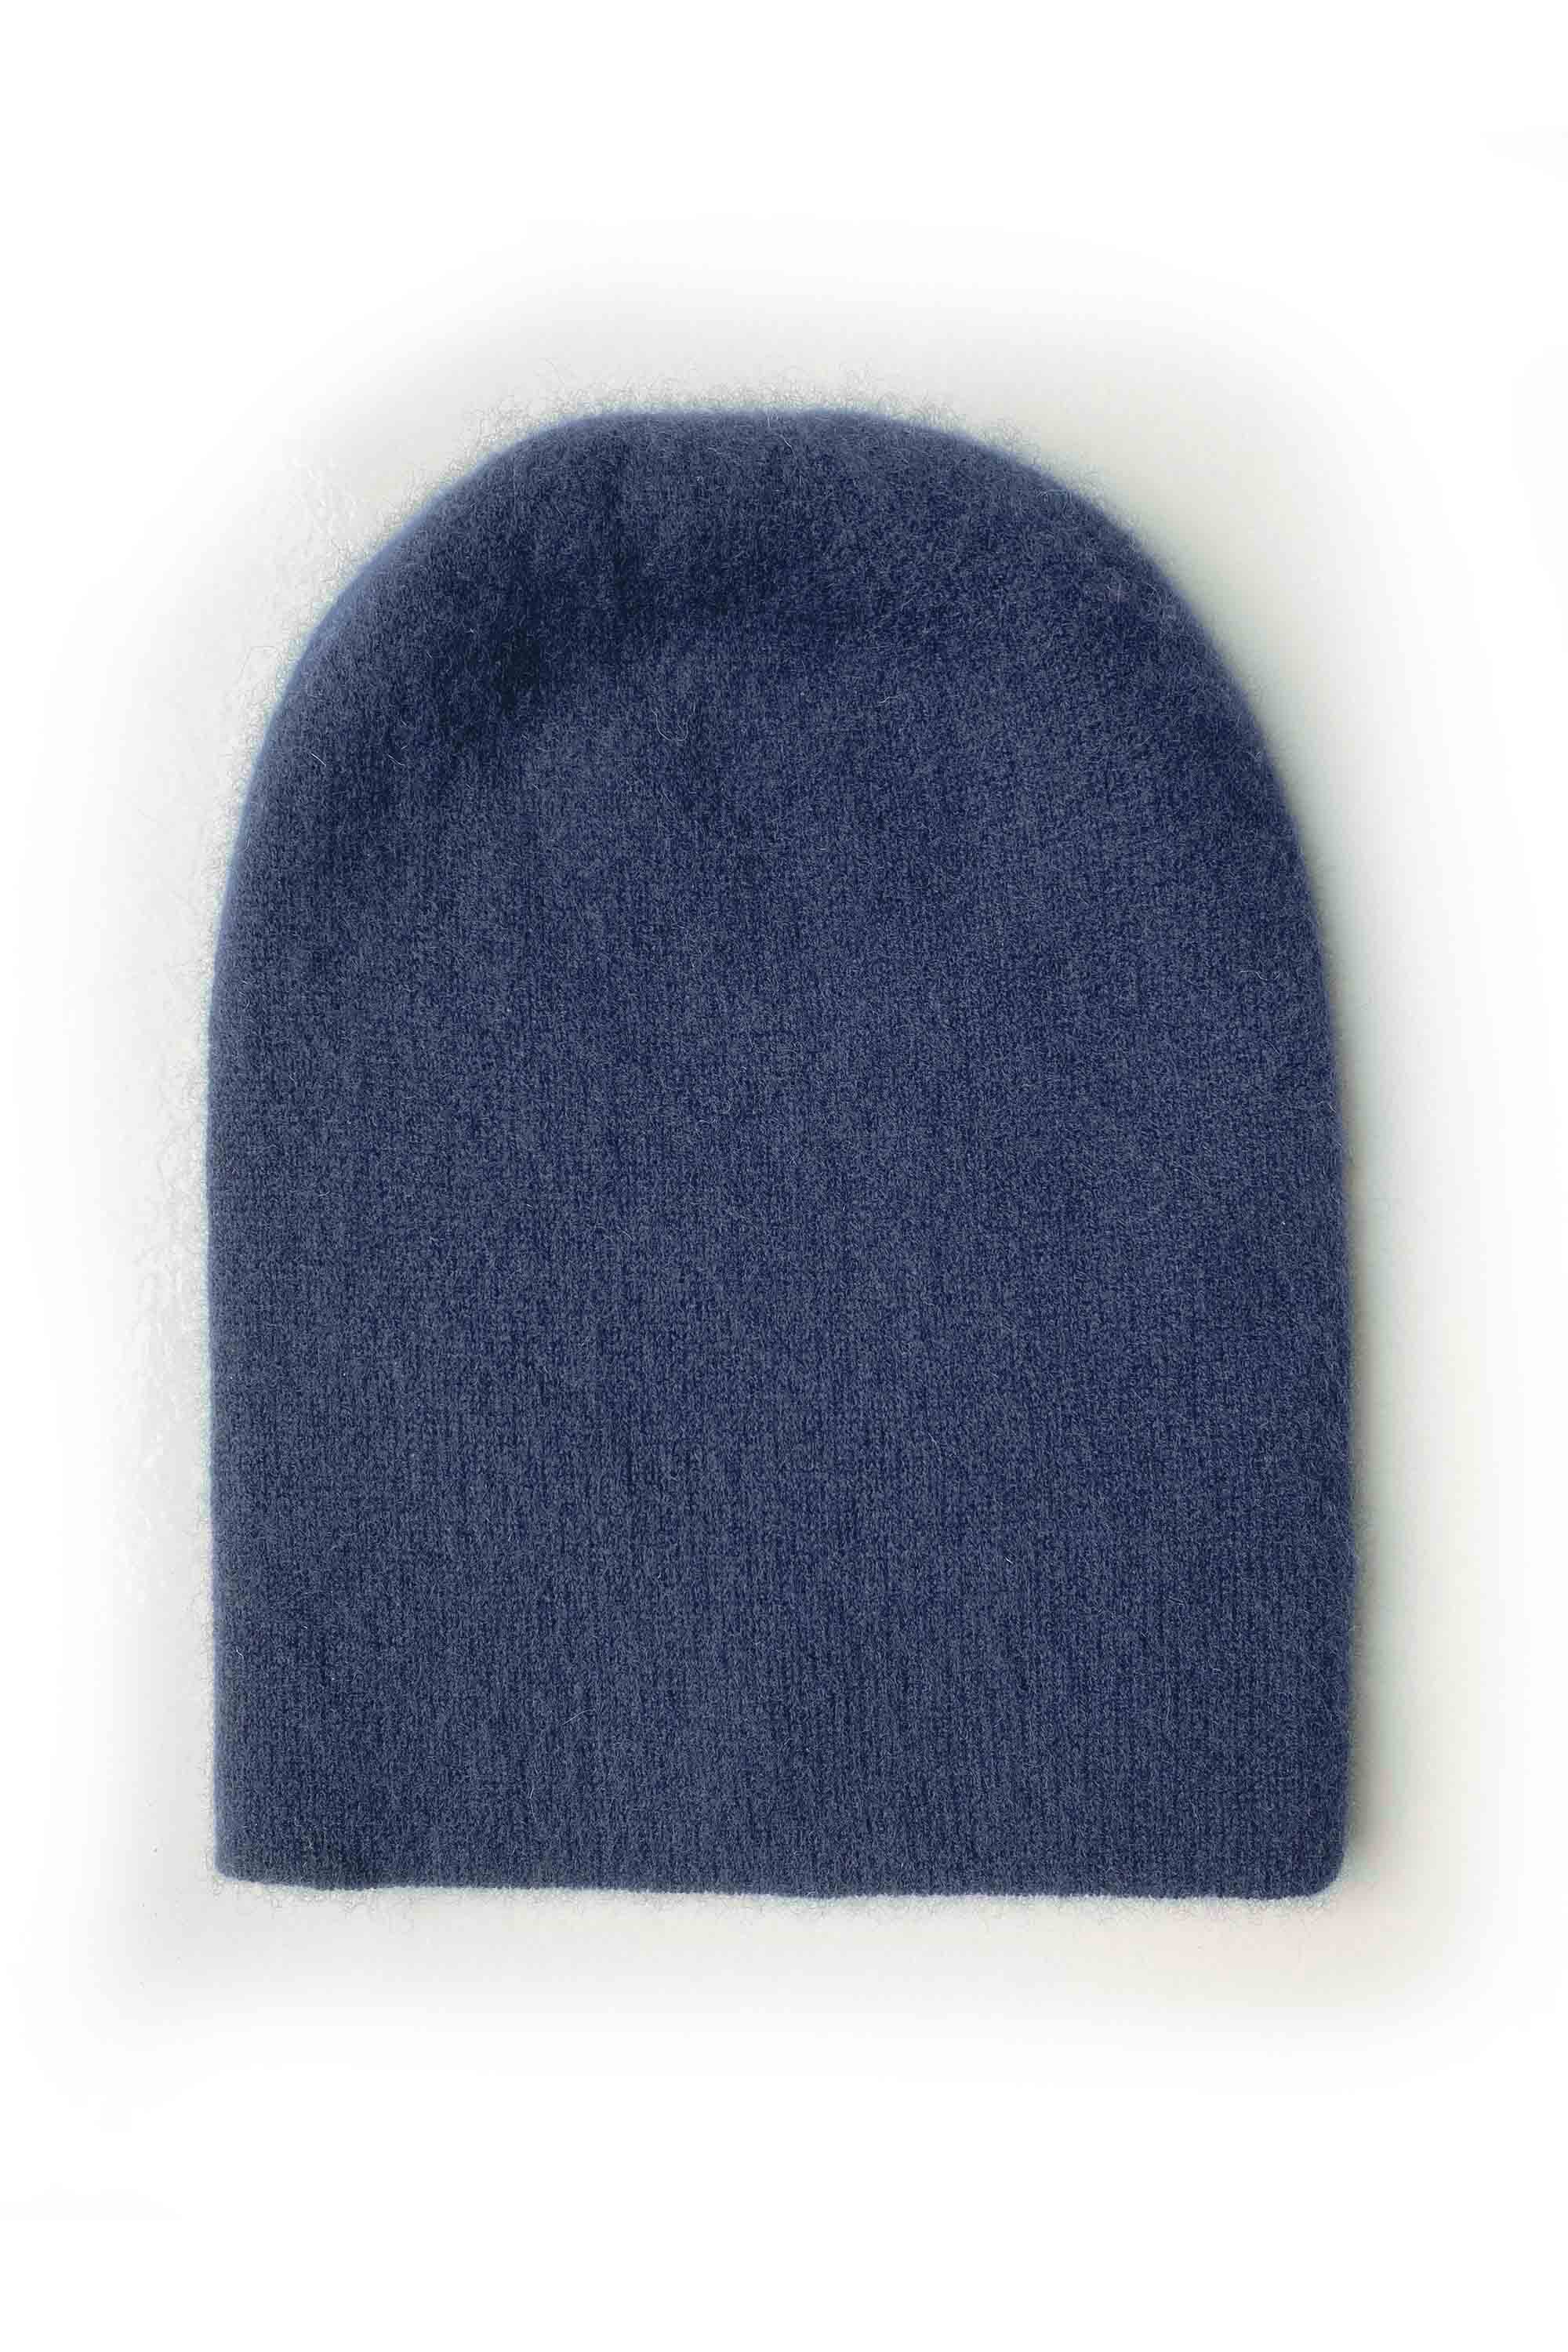 Womens 100% pure cashmere hat in navy blue | SEMON Cashmere